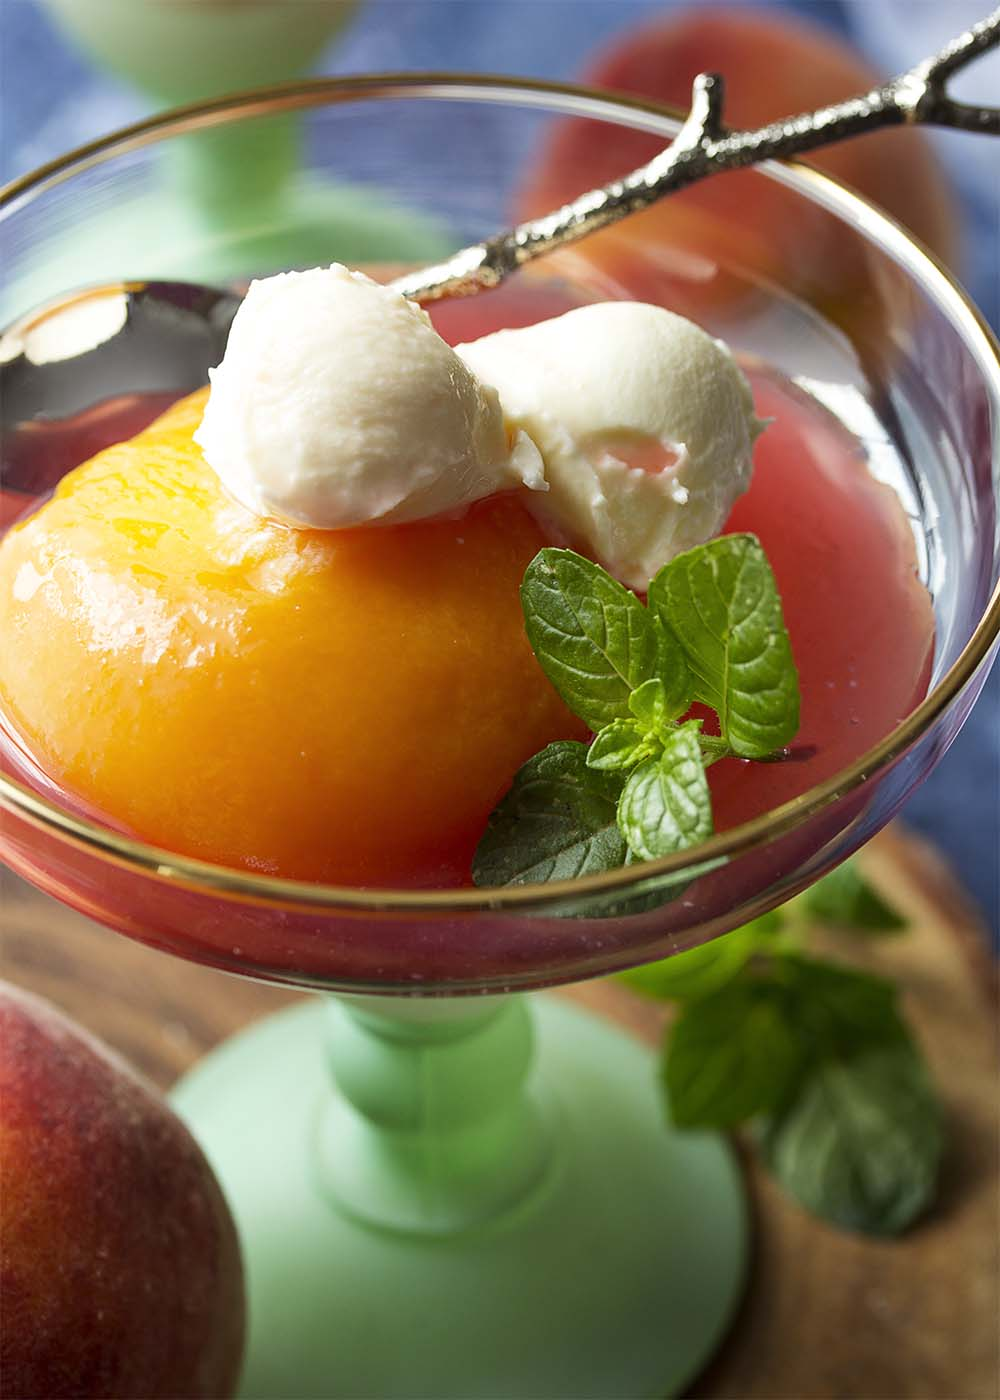 Tender honey poached peach halves are surrounded by a spiced syrup and topped by sweetened mascarpone cheese in a dessert cup.